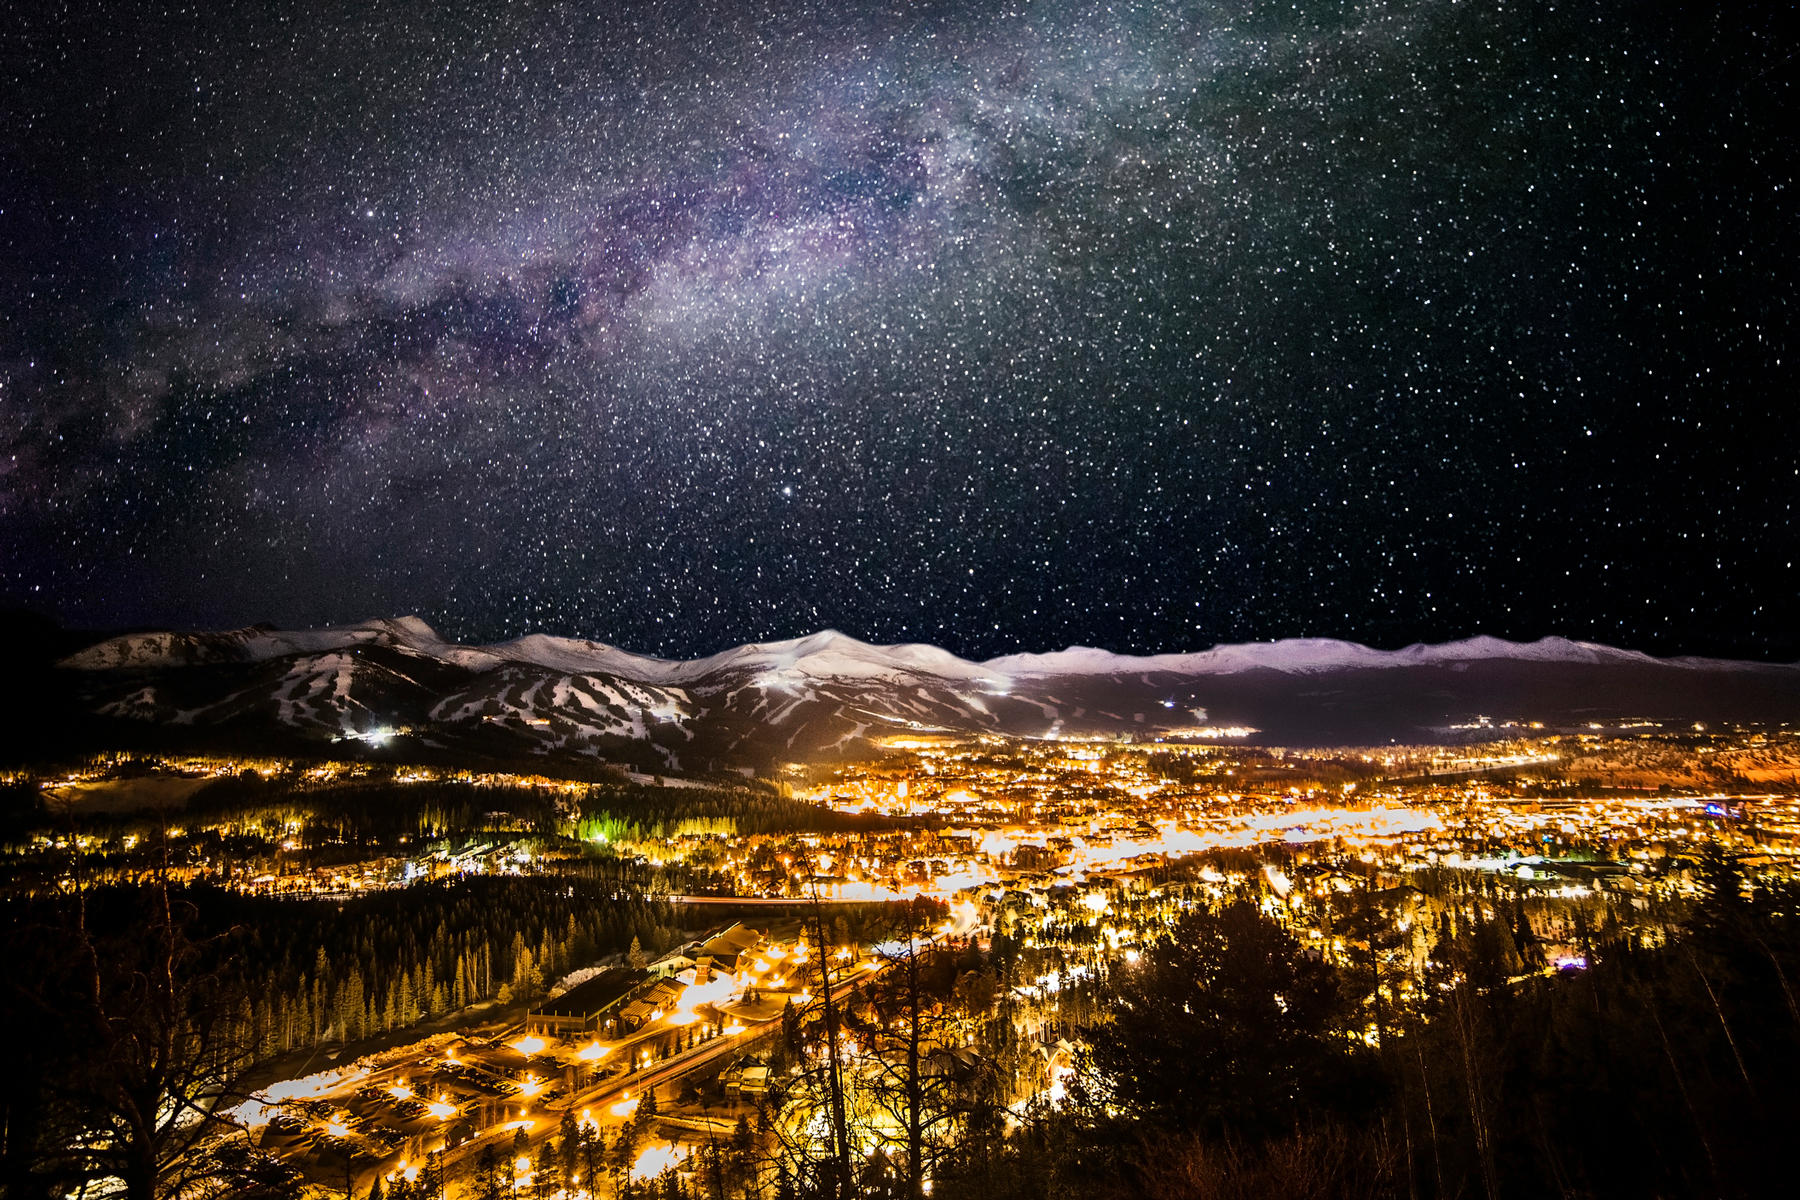 Winter time in Breckenridge, CO as it glows at night with the Milky Way above.